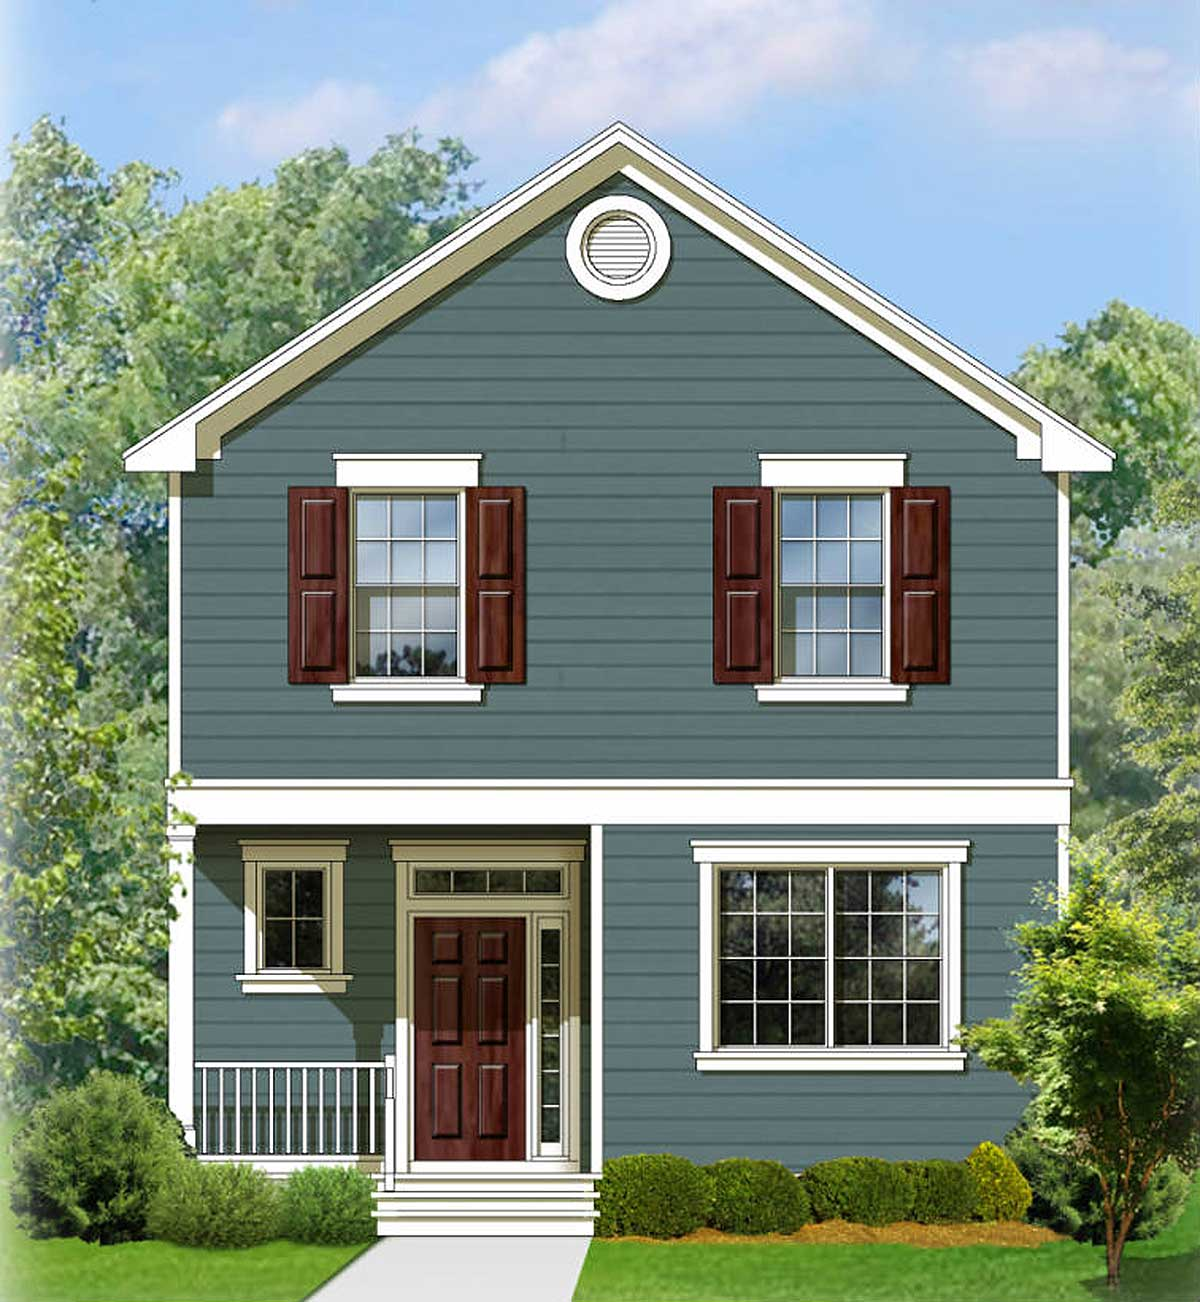 Small Home Plans: Two Story Traditional House Plan - 82083KA